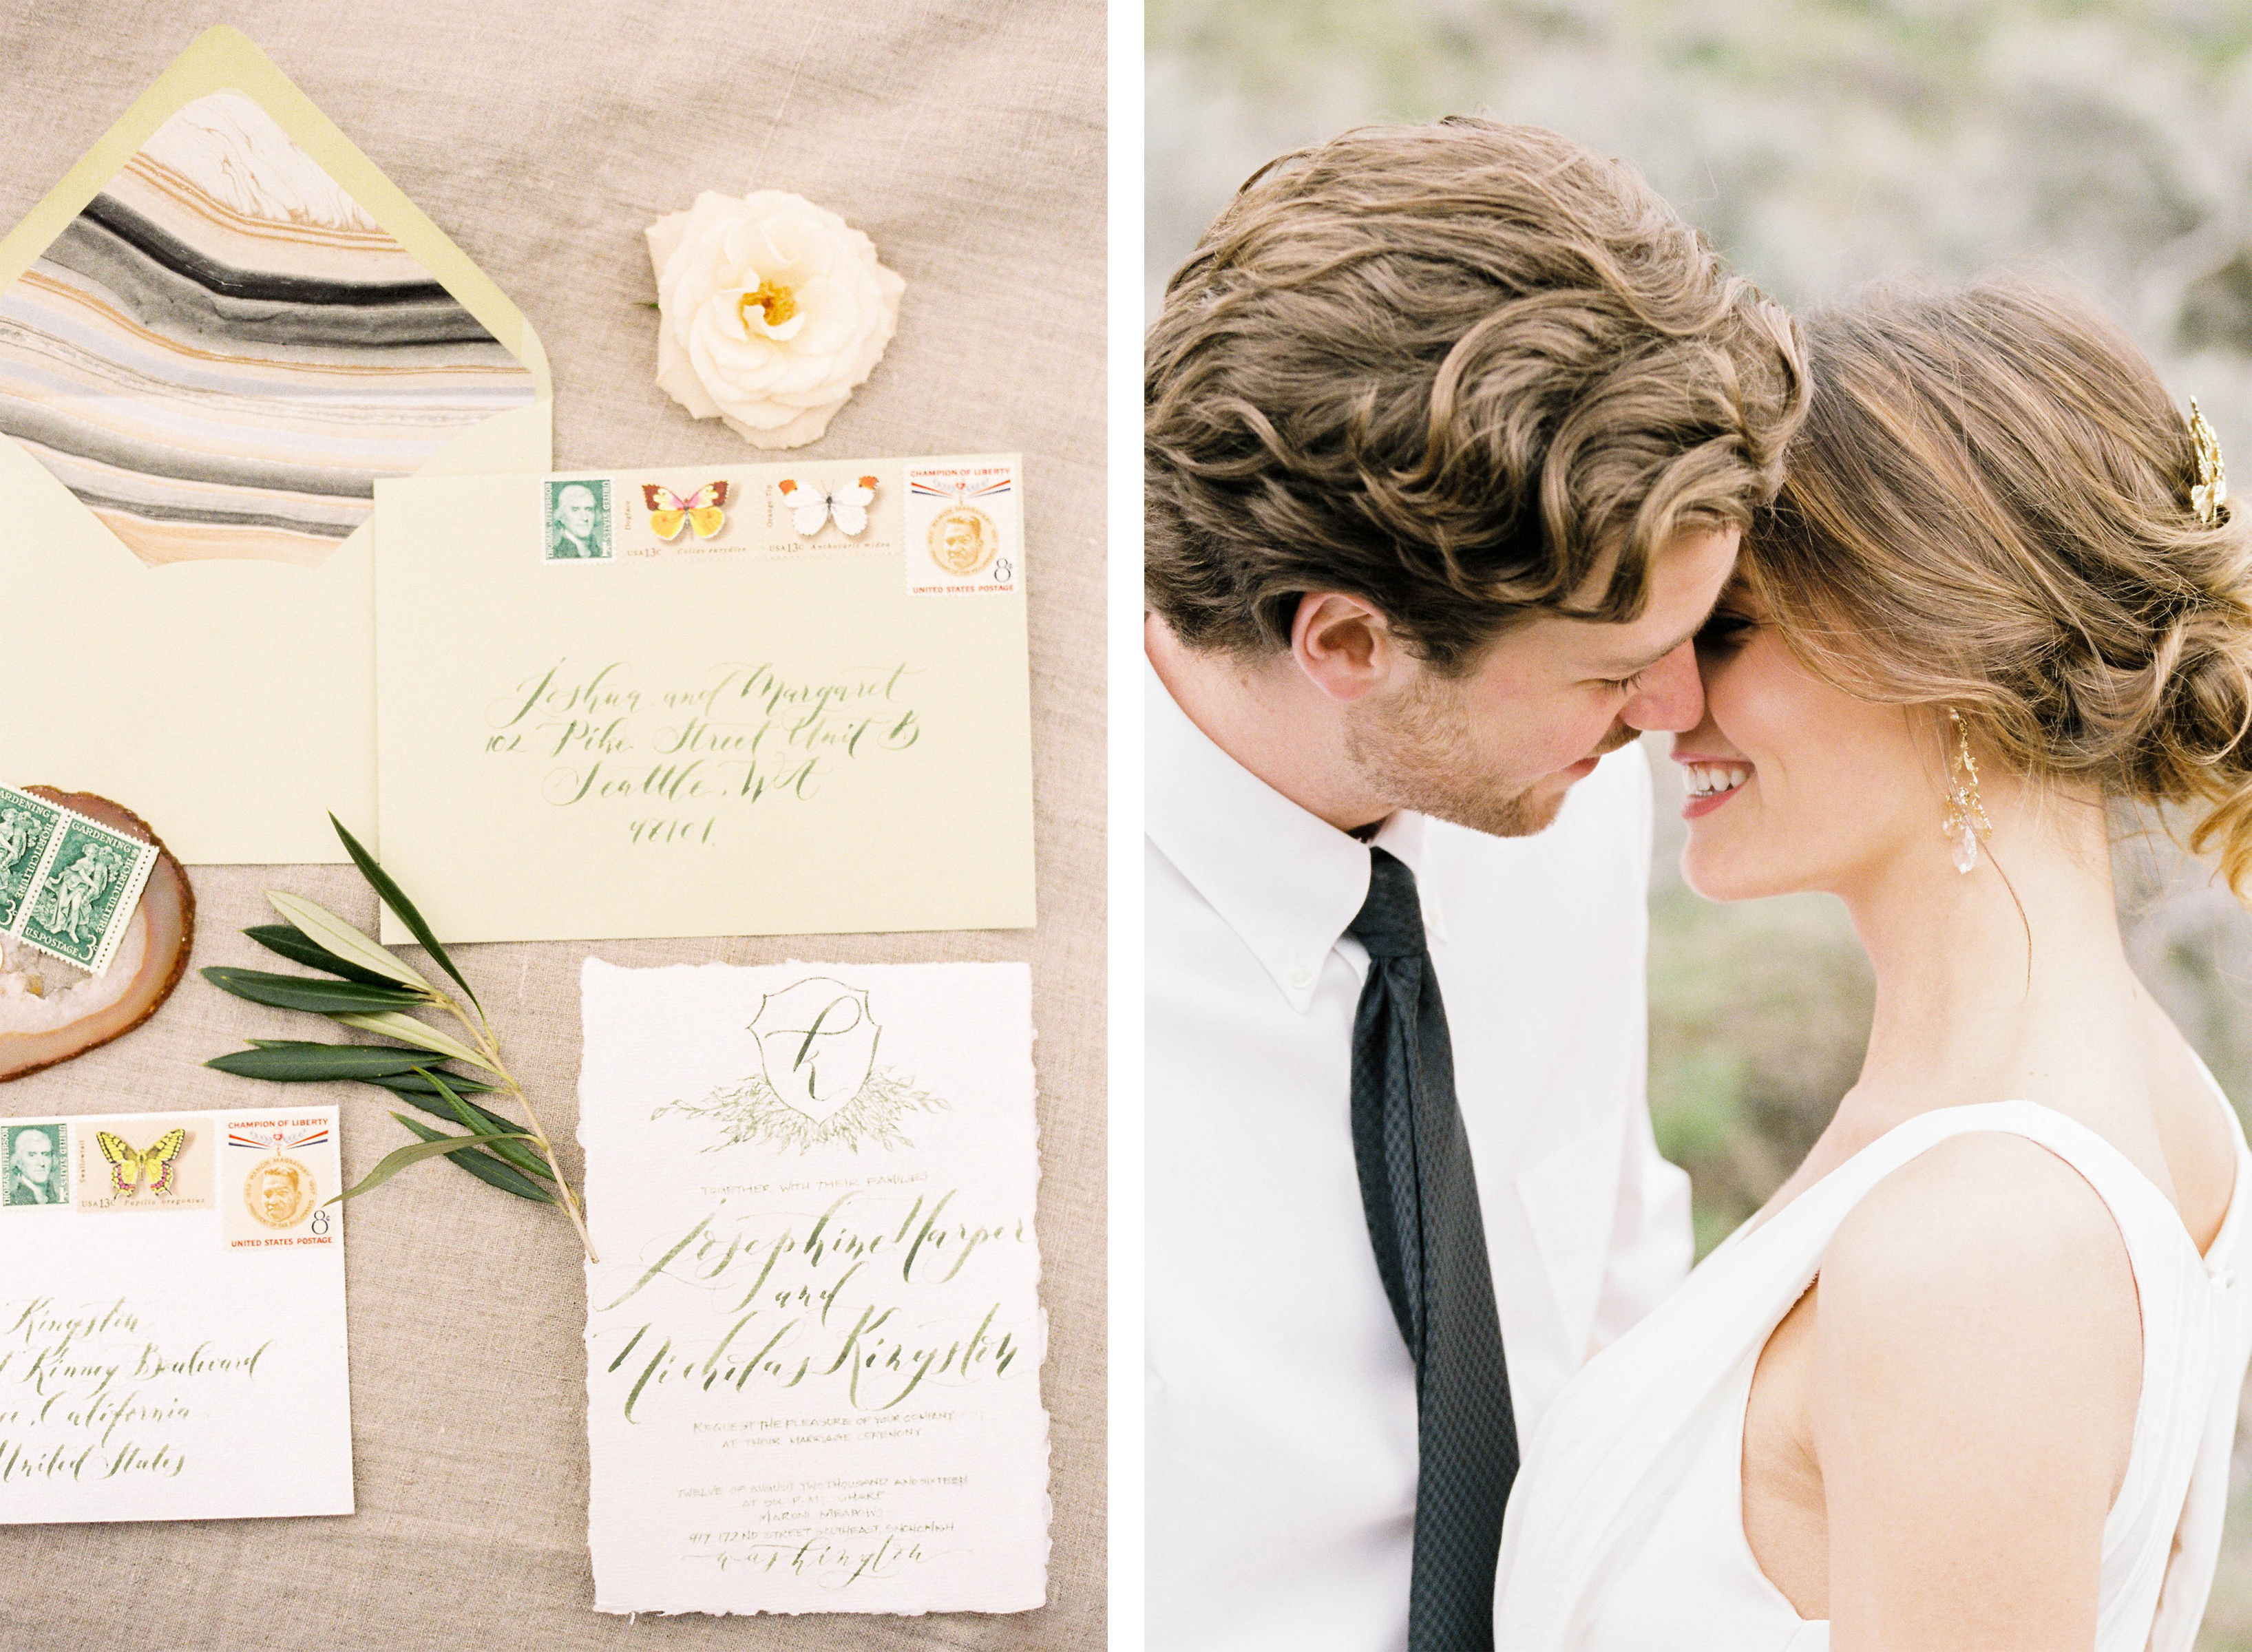 Seattle wedding planner plans elopement